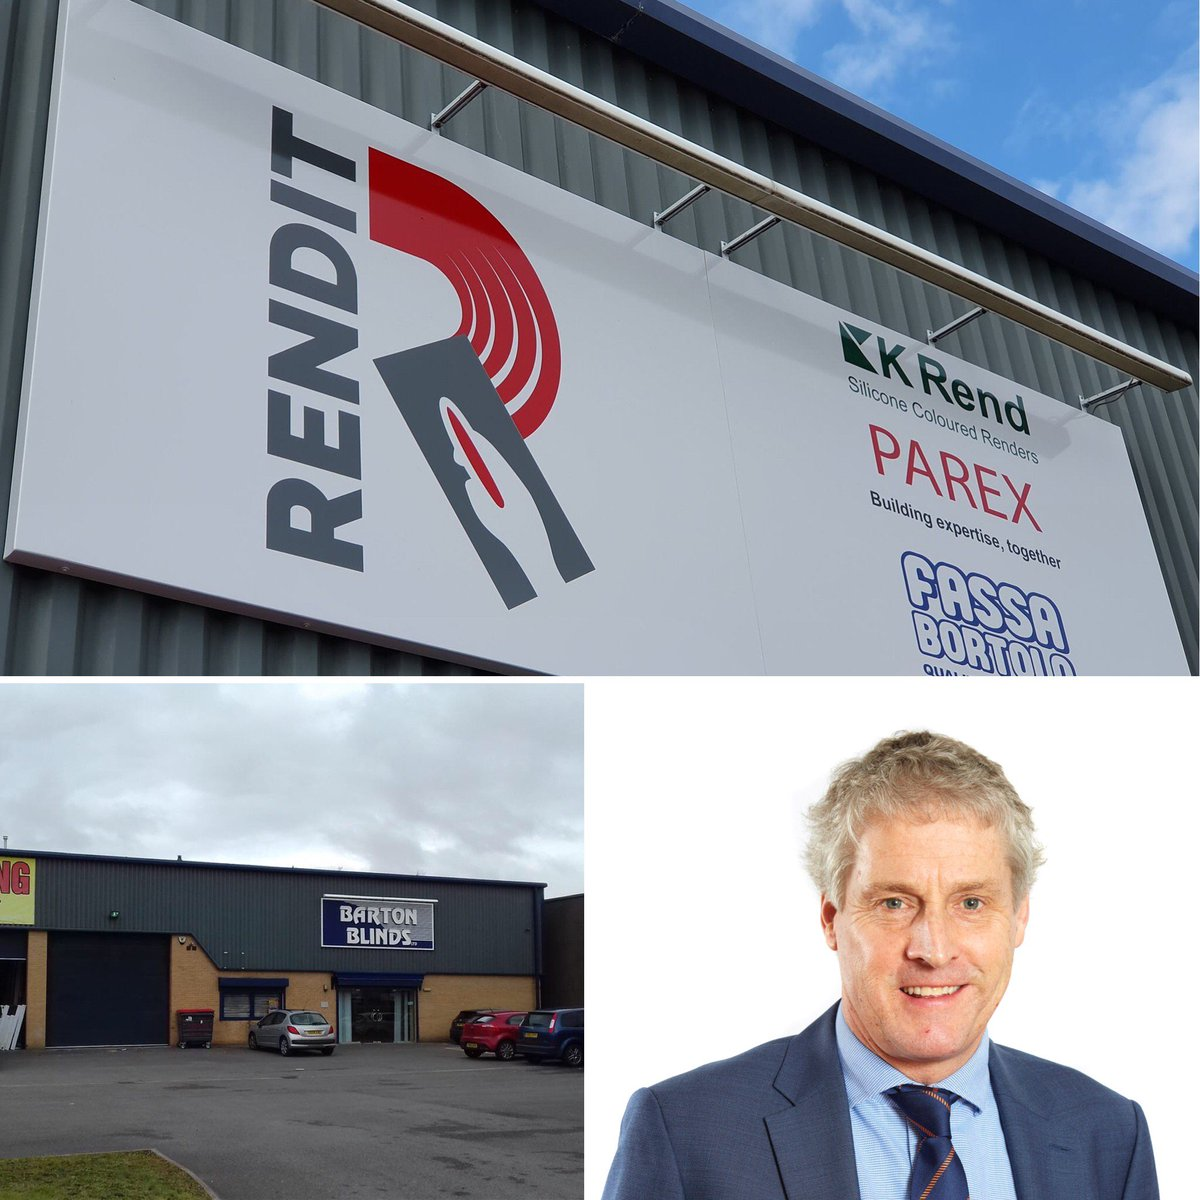 After helping Rendit find a new home on the Kirk Sandall Industrial Estate in #Doncaster, we're sure the rendering specialist will build on recent success #commercialproperty #doncasterisgreat http://ow.ly/eBSG50umzxm